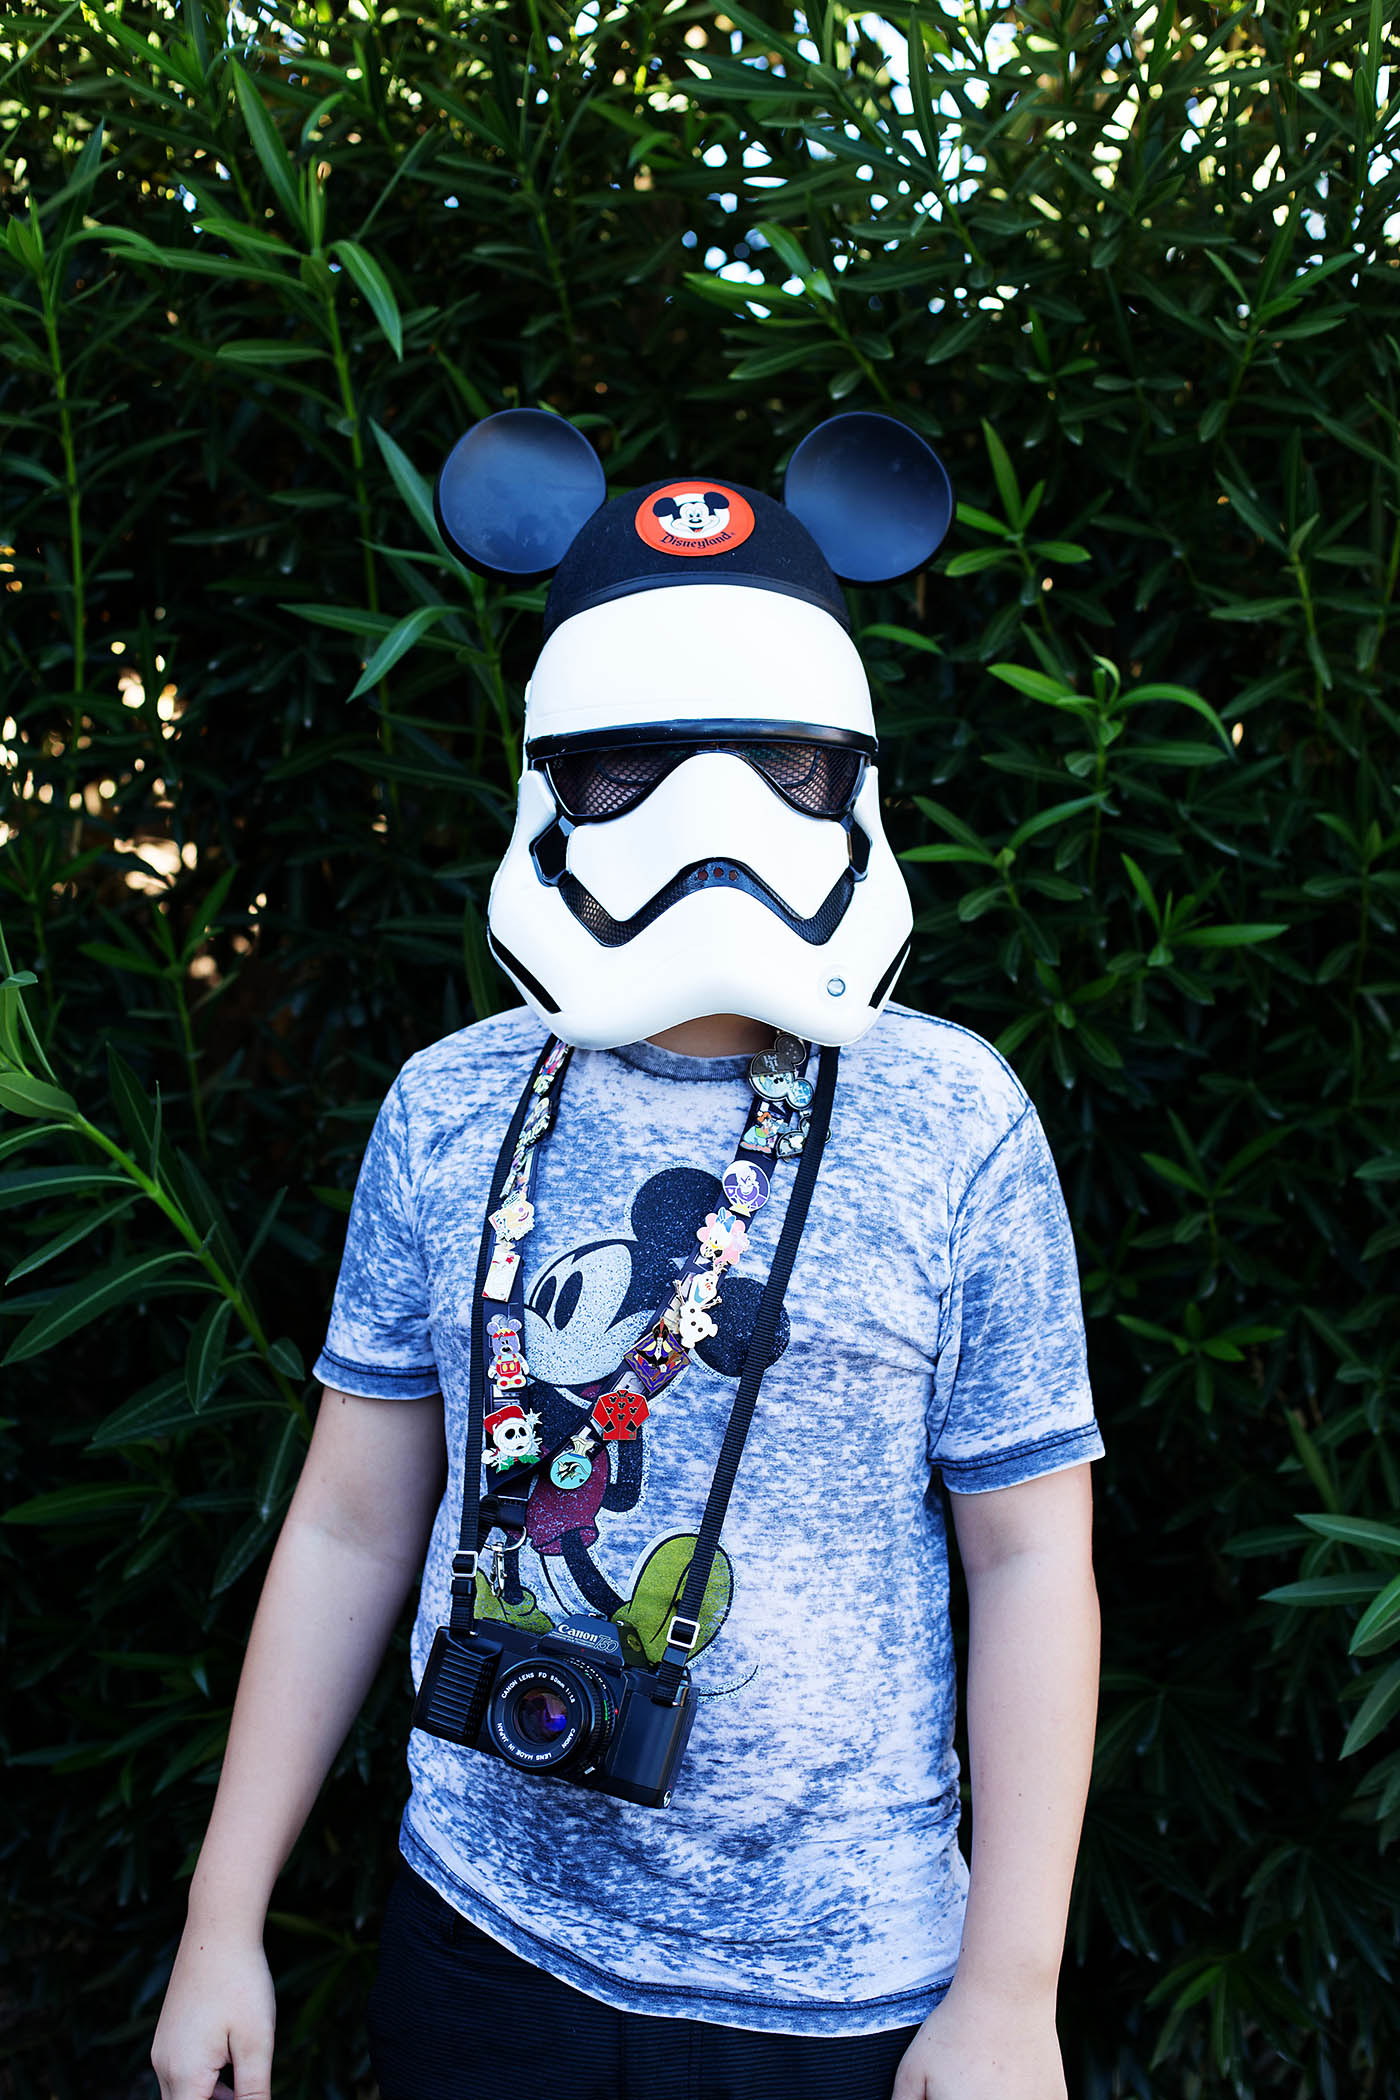 Storm Trooper going to Disneyland